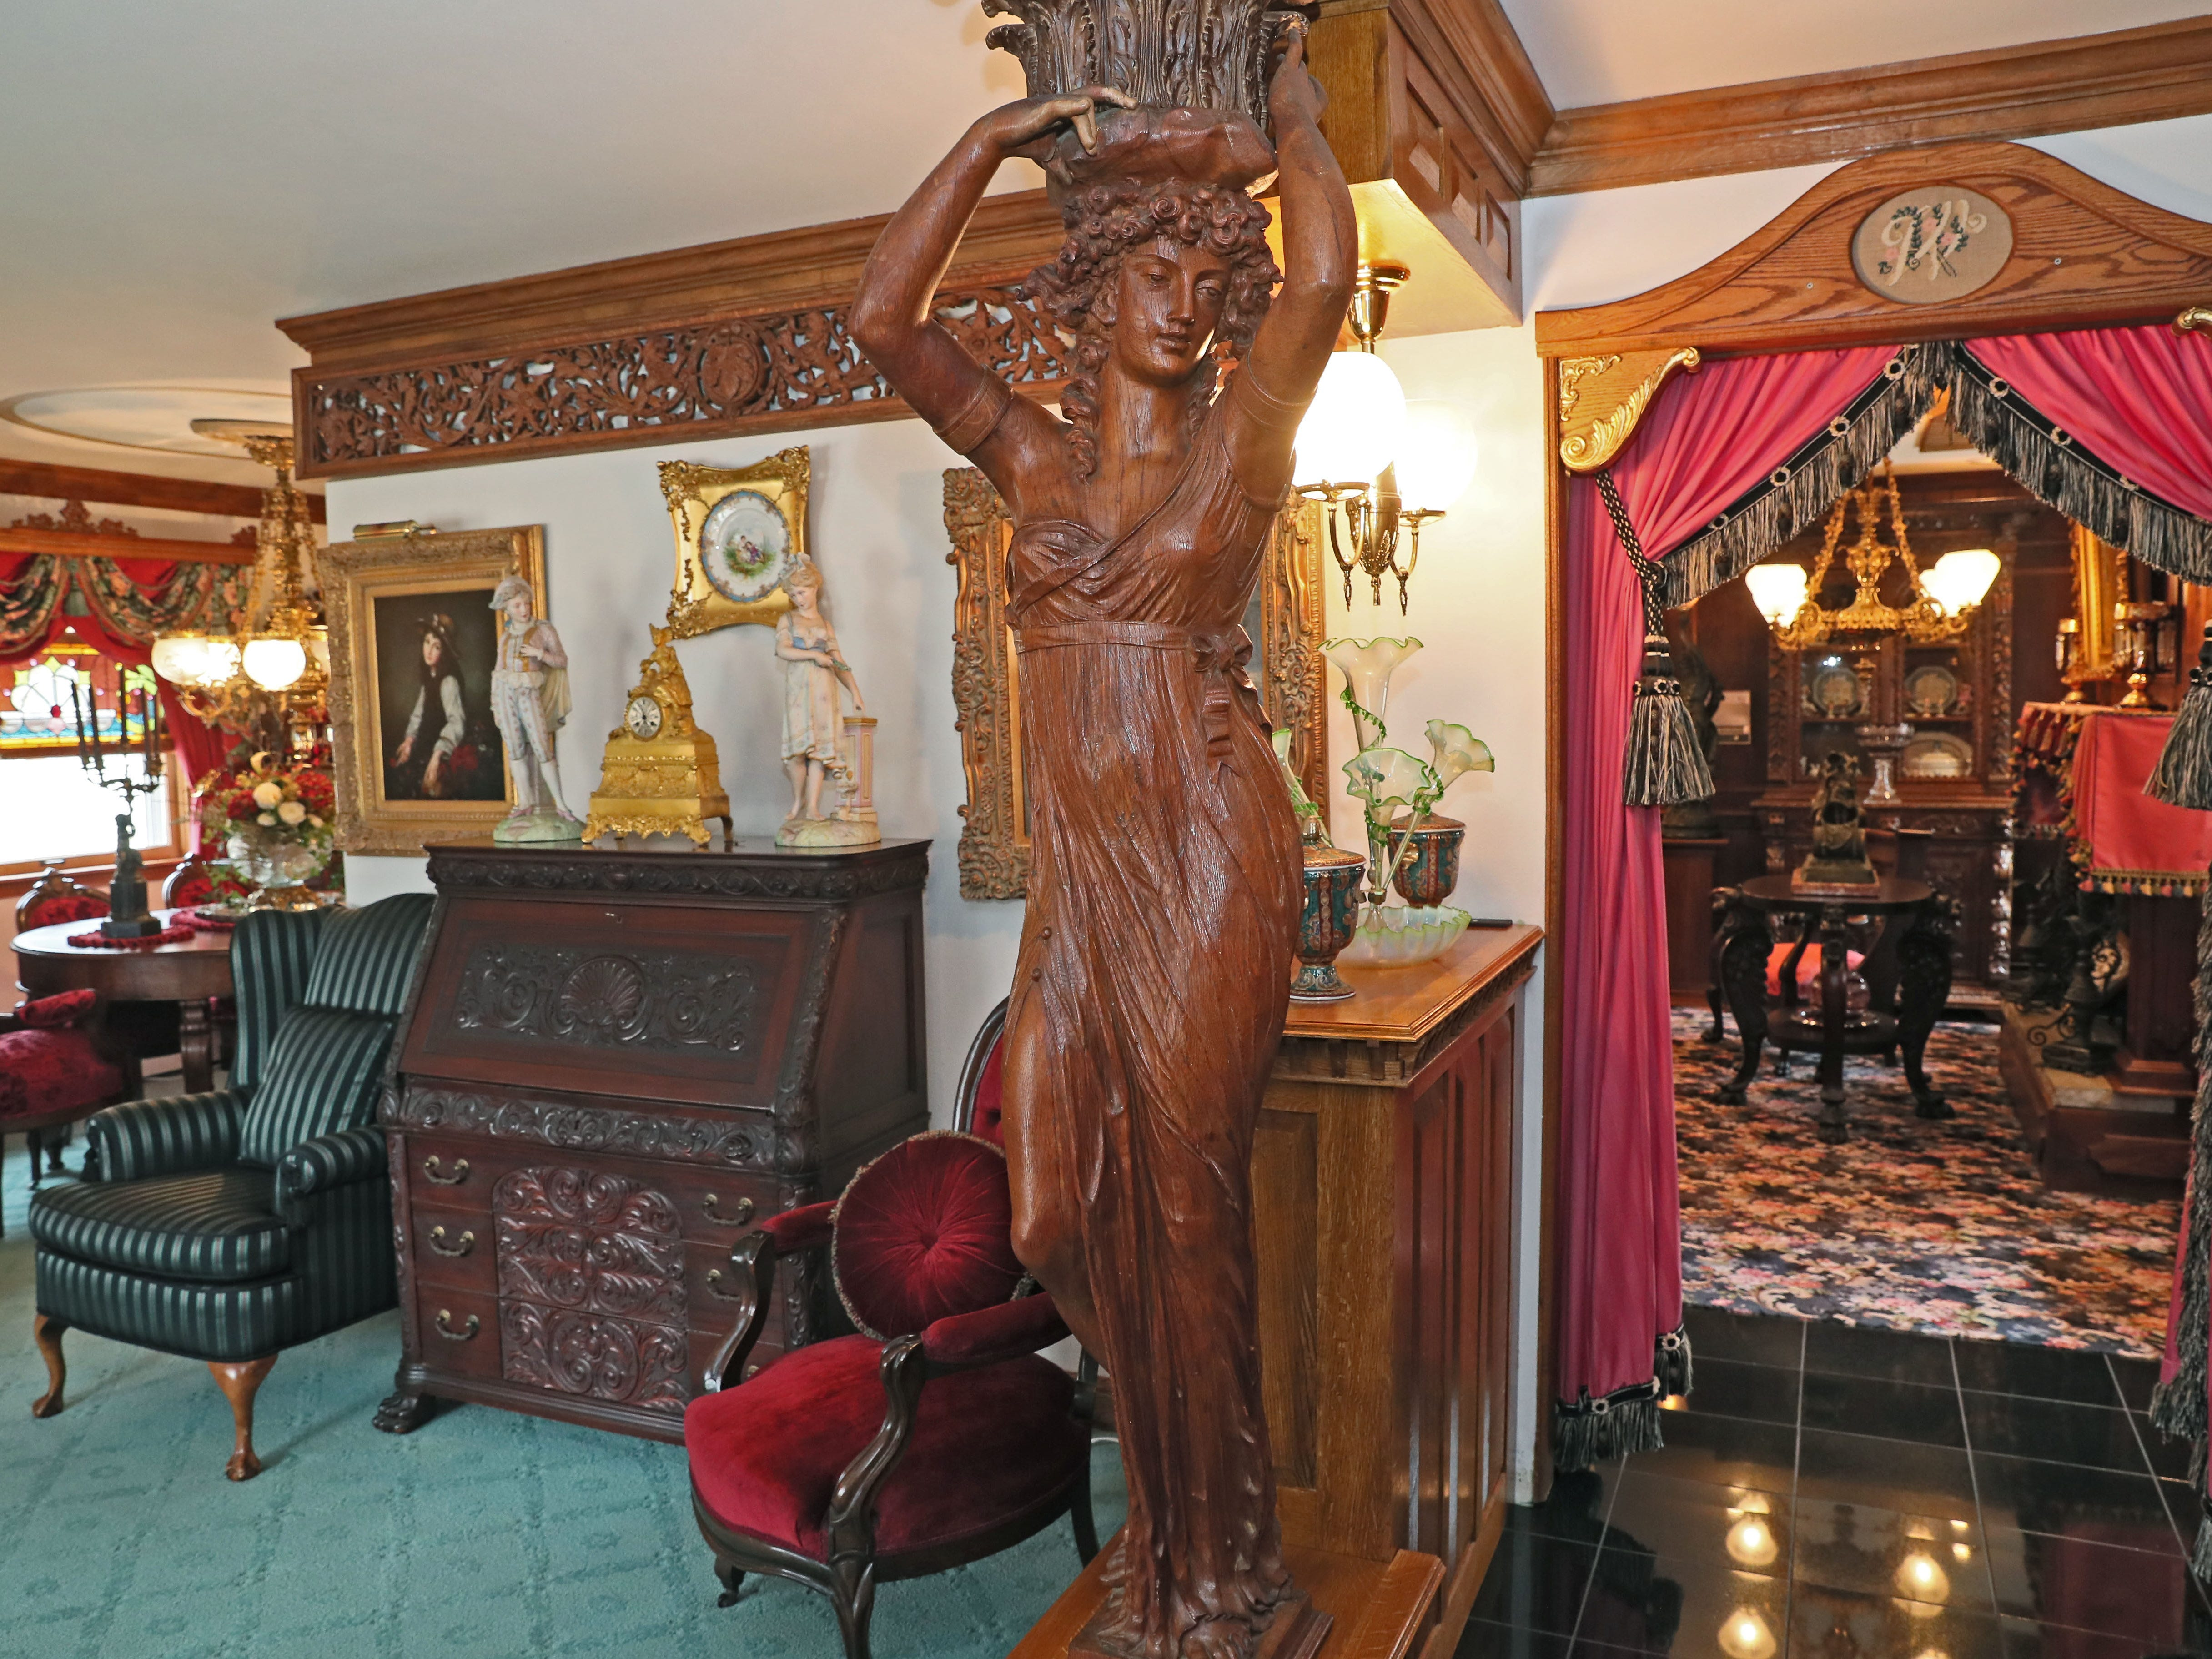 This carved newel post lady came from the Schandein Mansion in Milwaukee, located at 24th Street and Wisconsin Avenue.  At left is the living room, and  back left the dining room. The doorway at right leads to a sitting room with a fireplace.